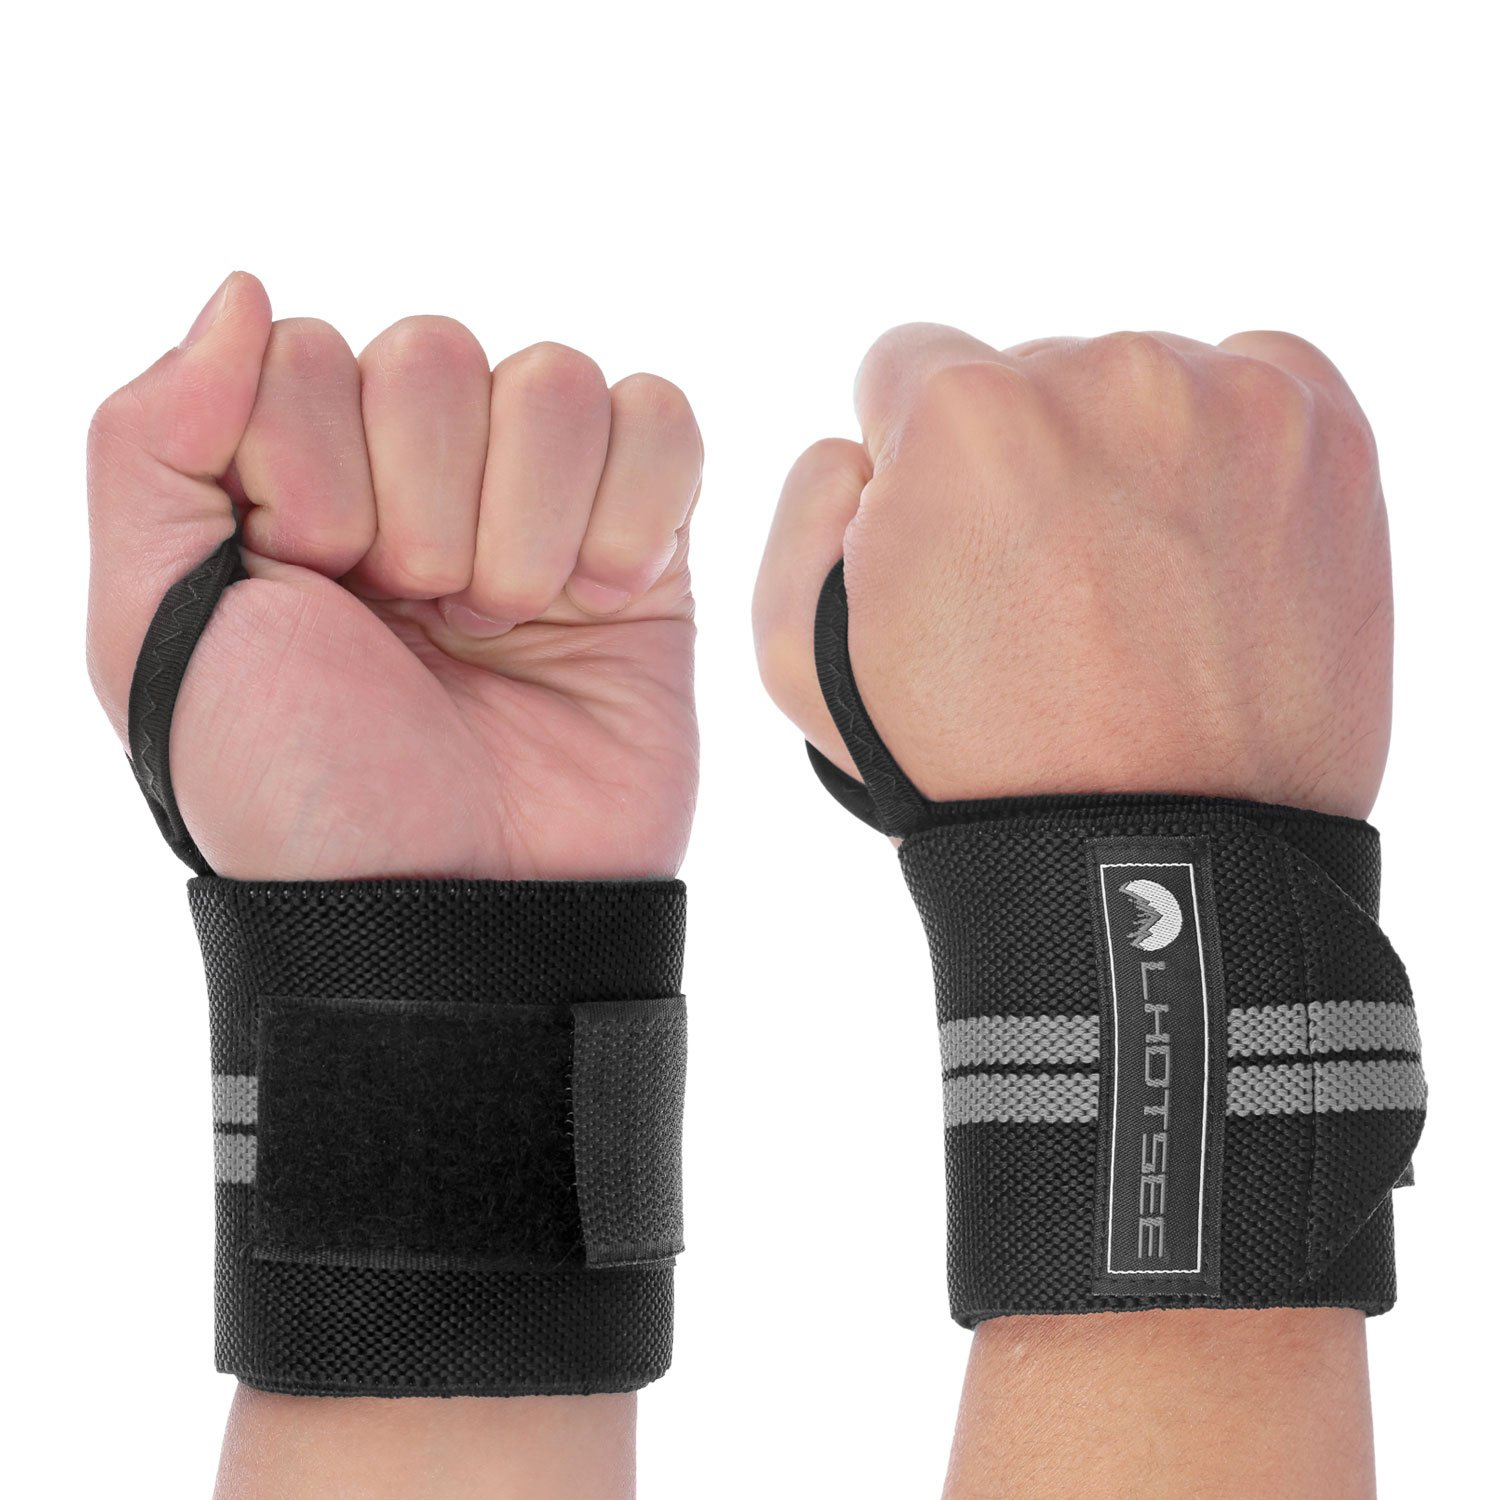 LHOTSEE Premium Wrist Straps,Professional Weight Lifting Training Wrist Straps Support Braces Wraps For Men and Women (Gray)